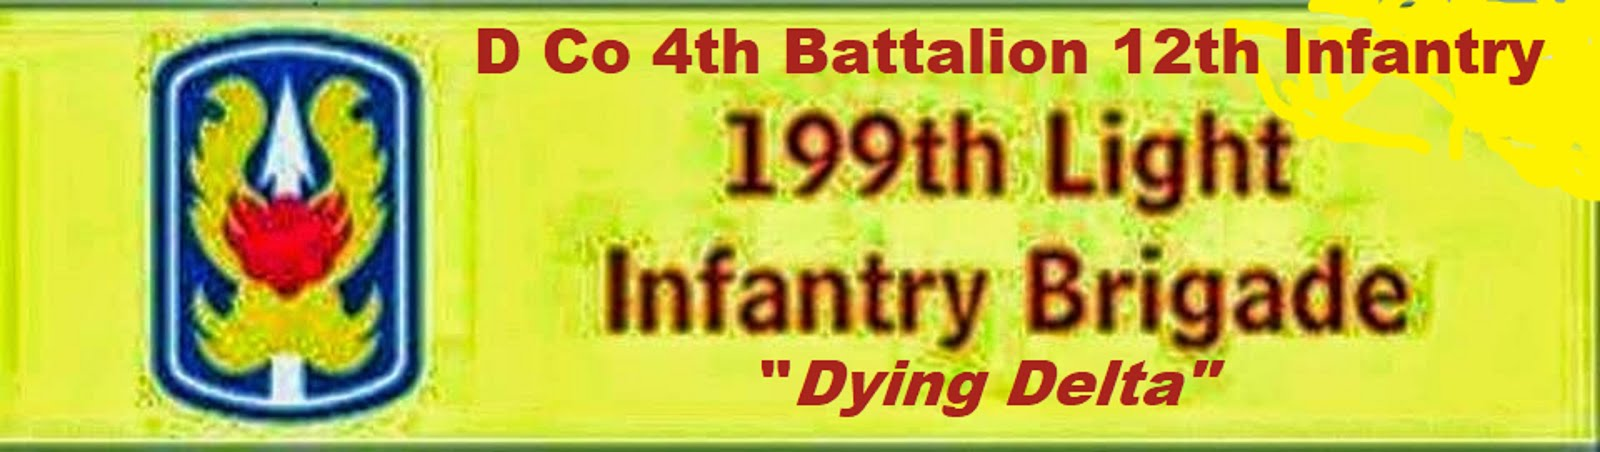 "D CO   4th BATTALION 12th INFANTRY 199tth LIGHT INFANTRY BRIGADE ""DYING DELTA"""